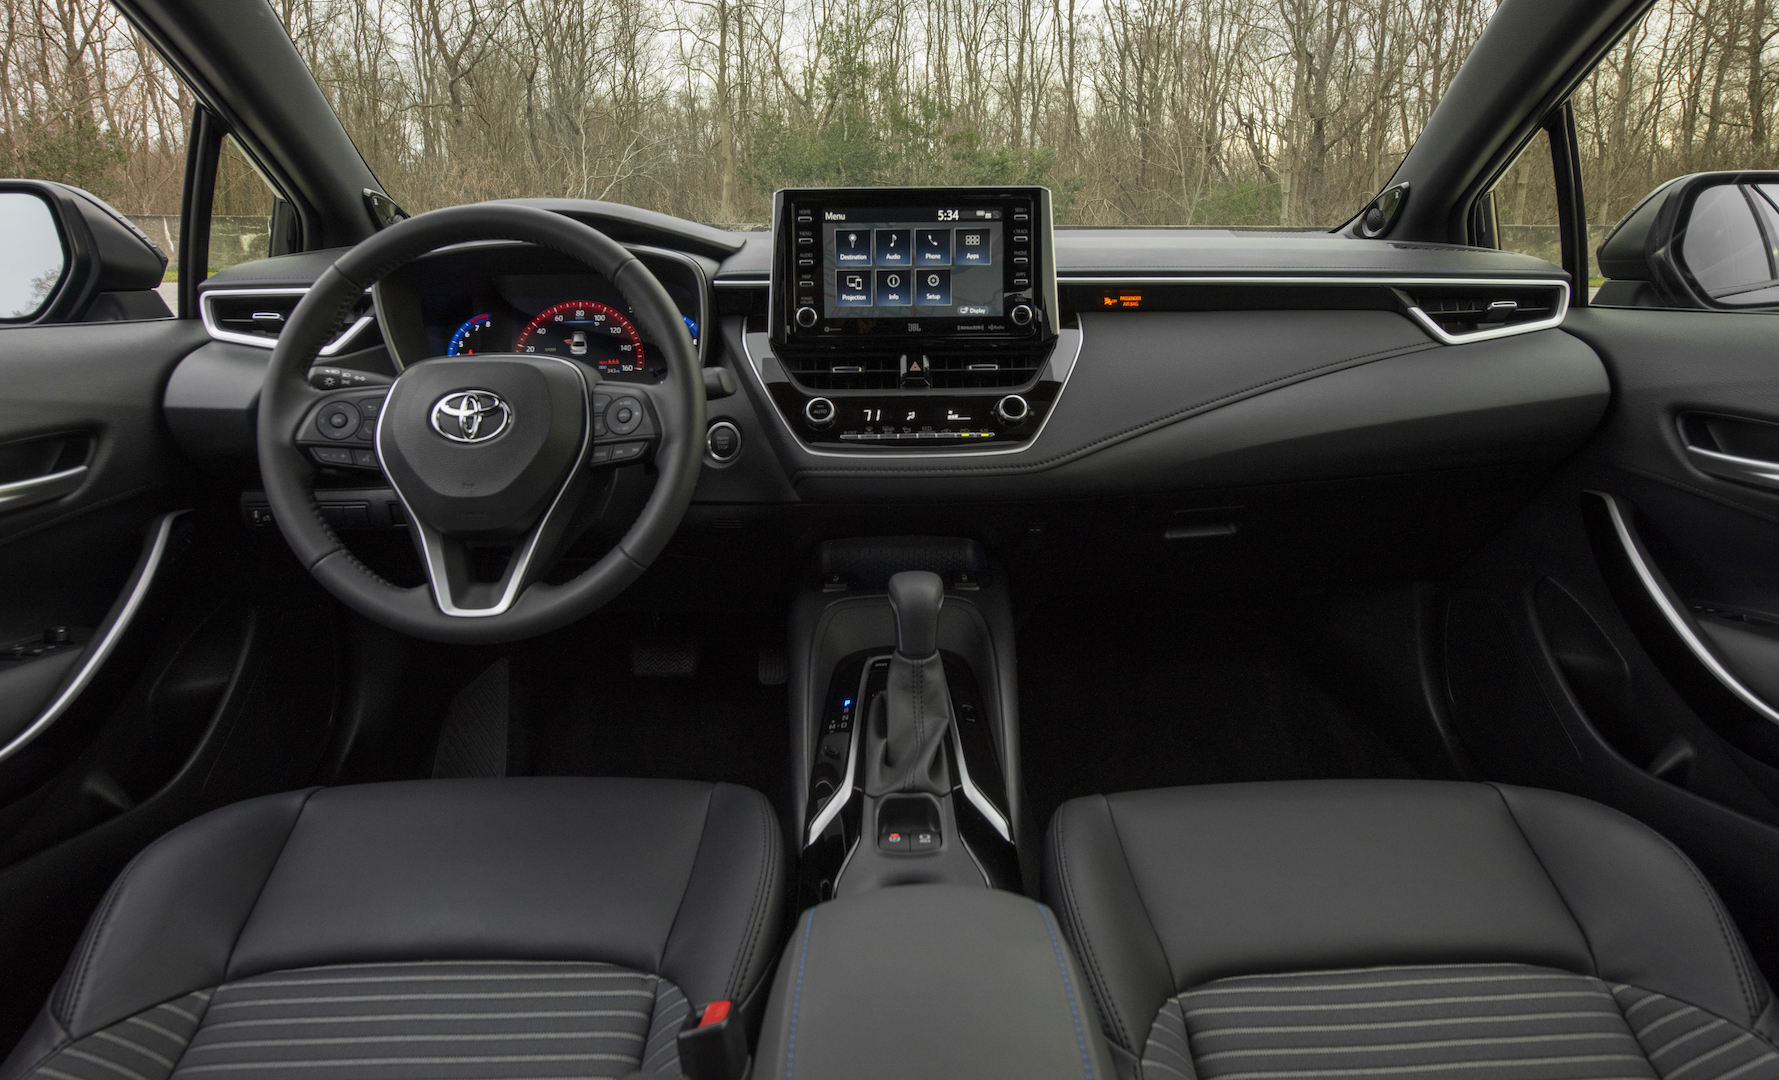 2020_Corolla_XSE_BlackSandPearl_039_v1_current